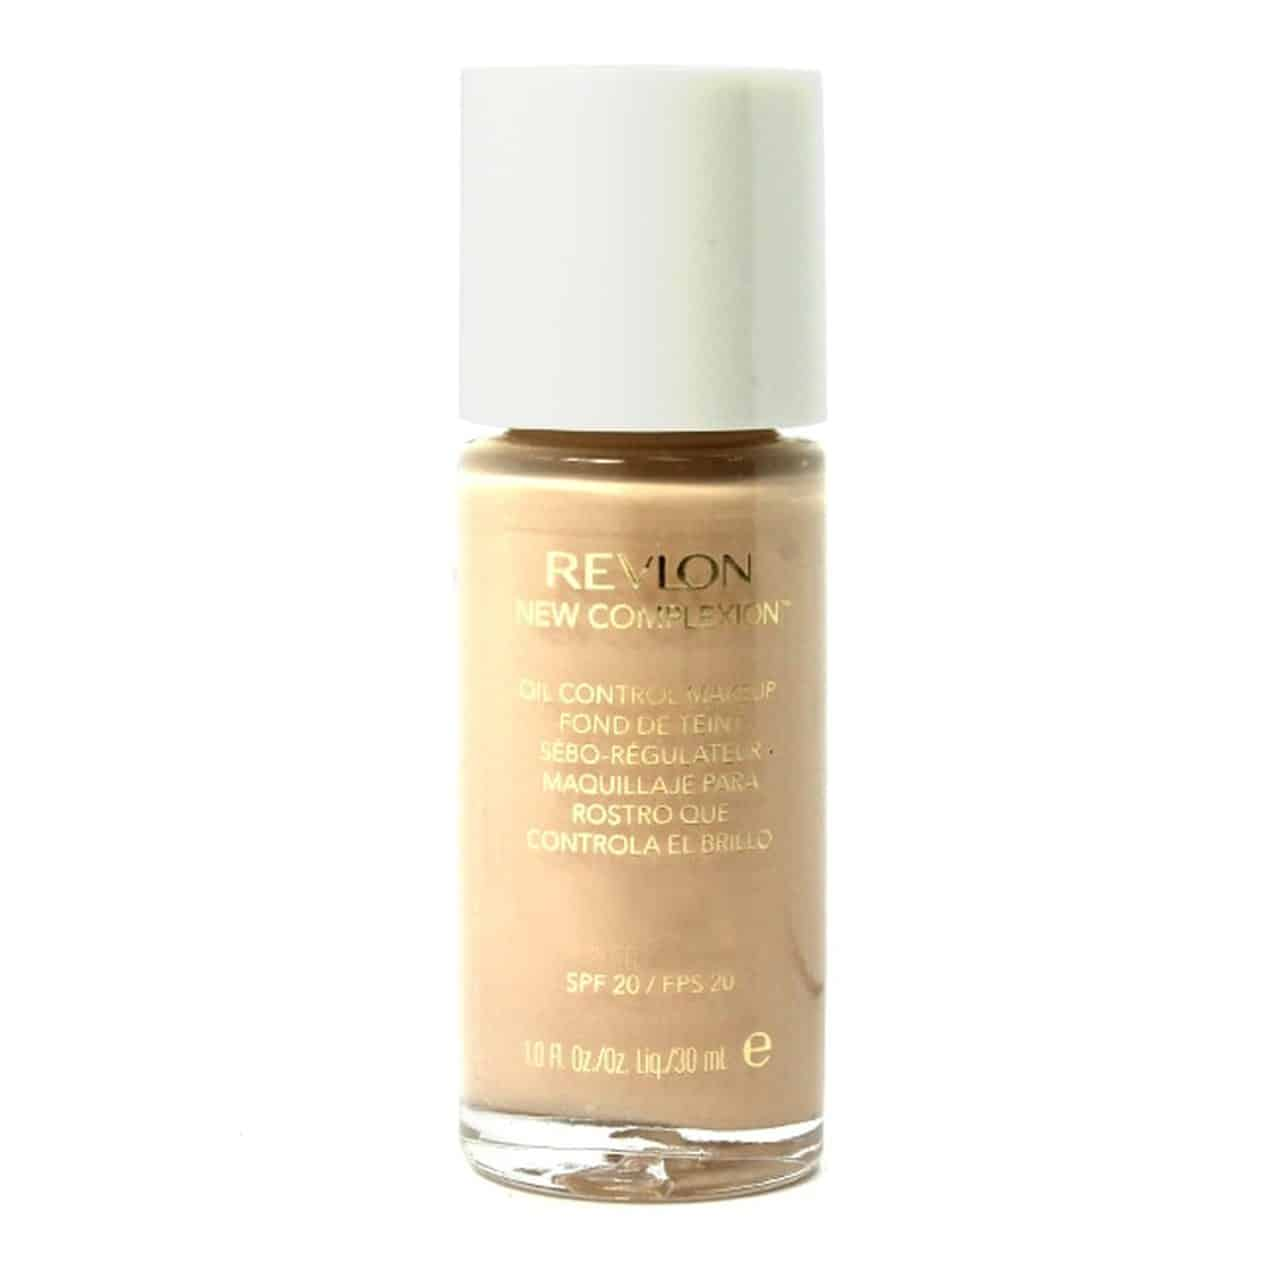 Revlon-New-Complexion-Oil-Control-Makeup